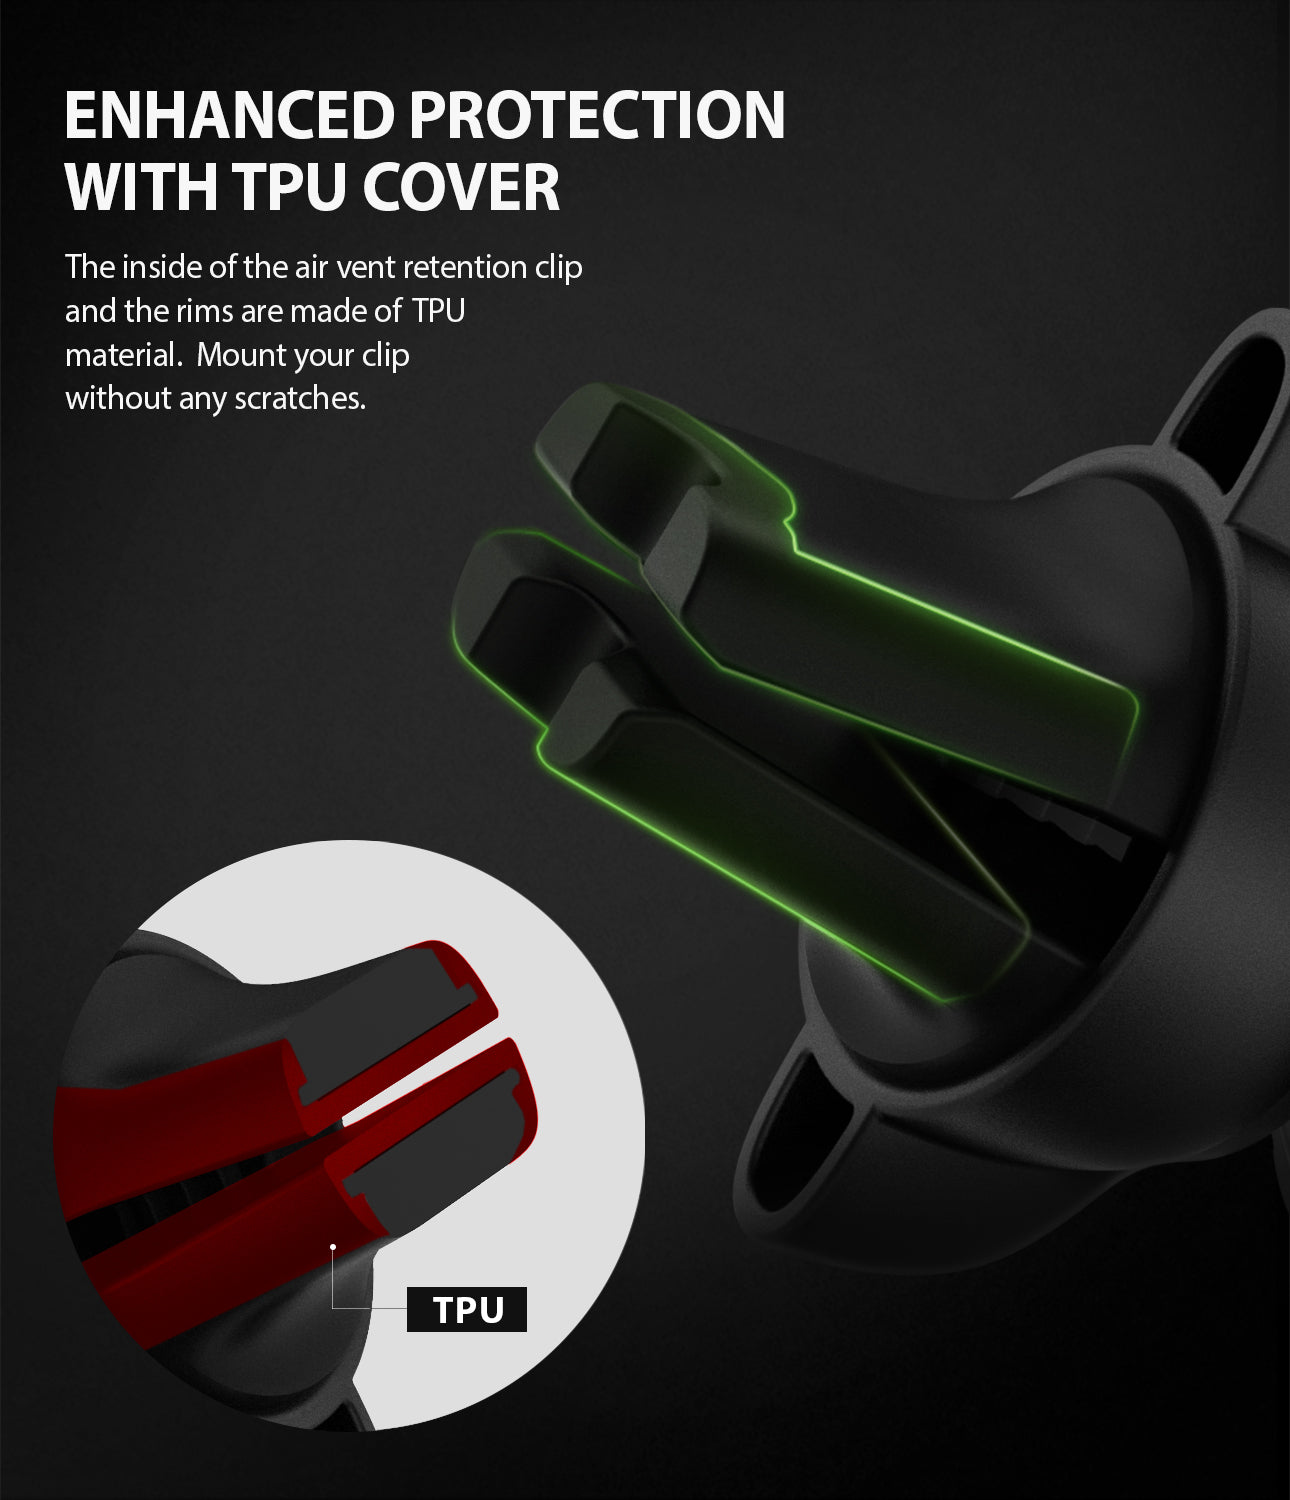 power Clip Air Vent Car Mount - enhanced protection with tpu cover